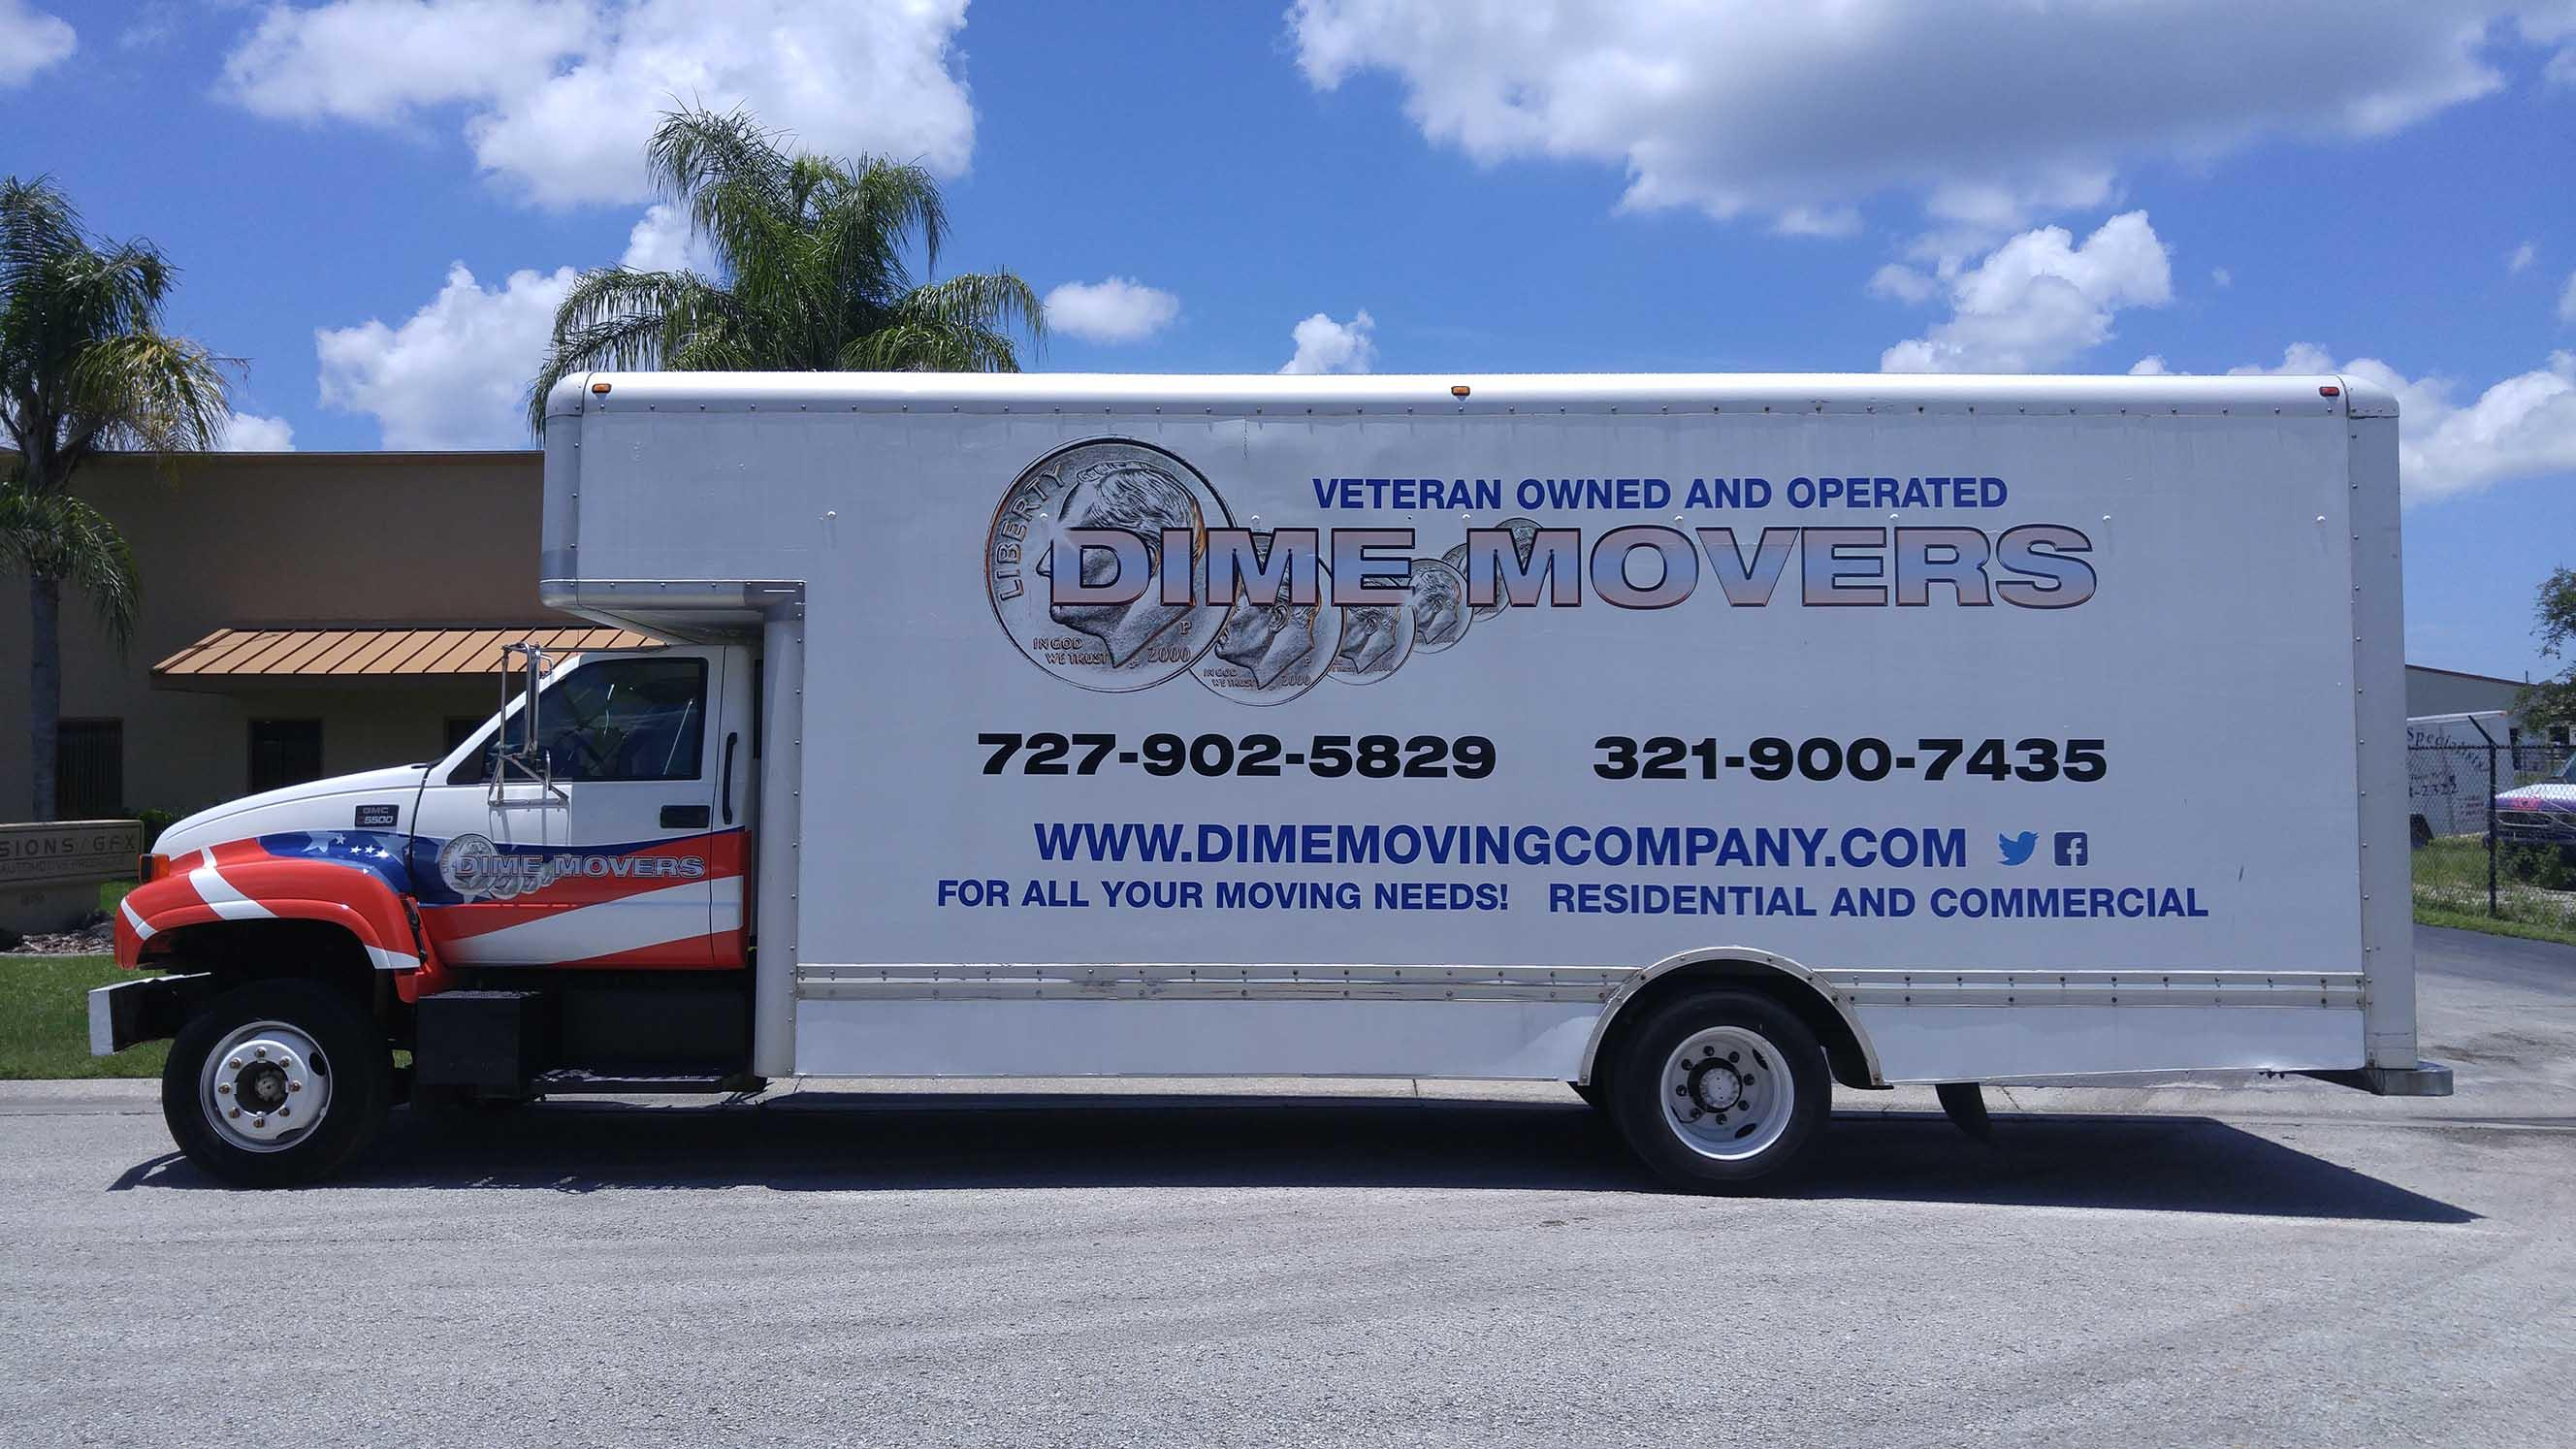 The Dime Moving Company LLC image 13